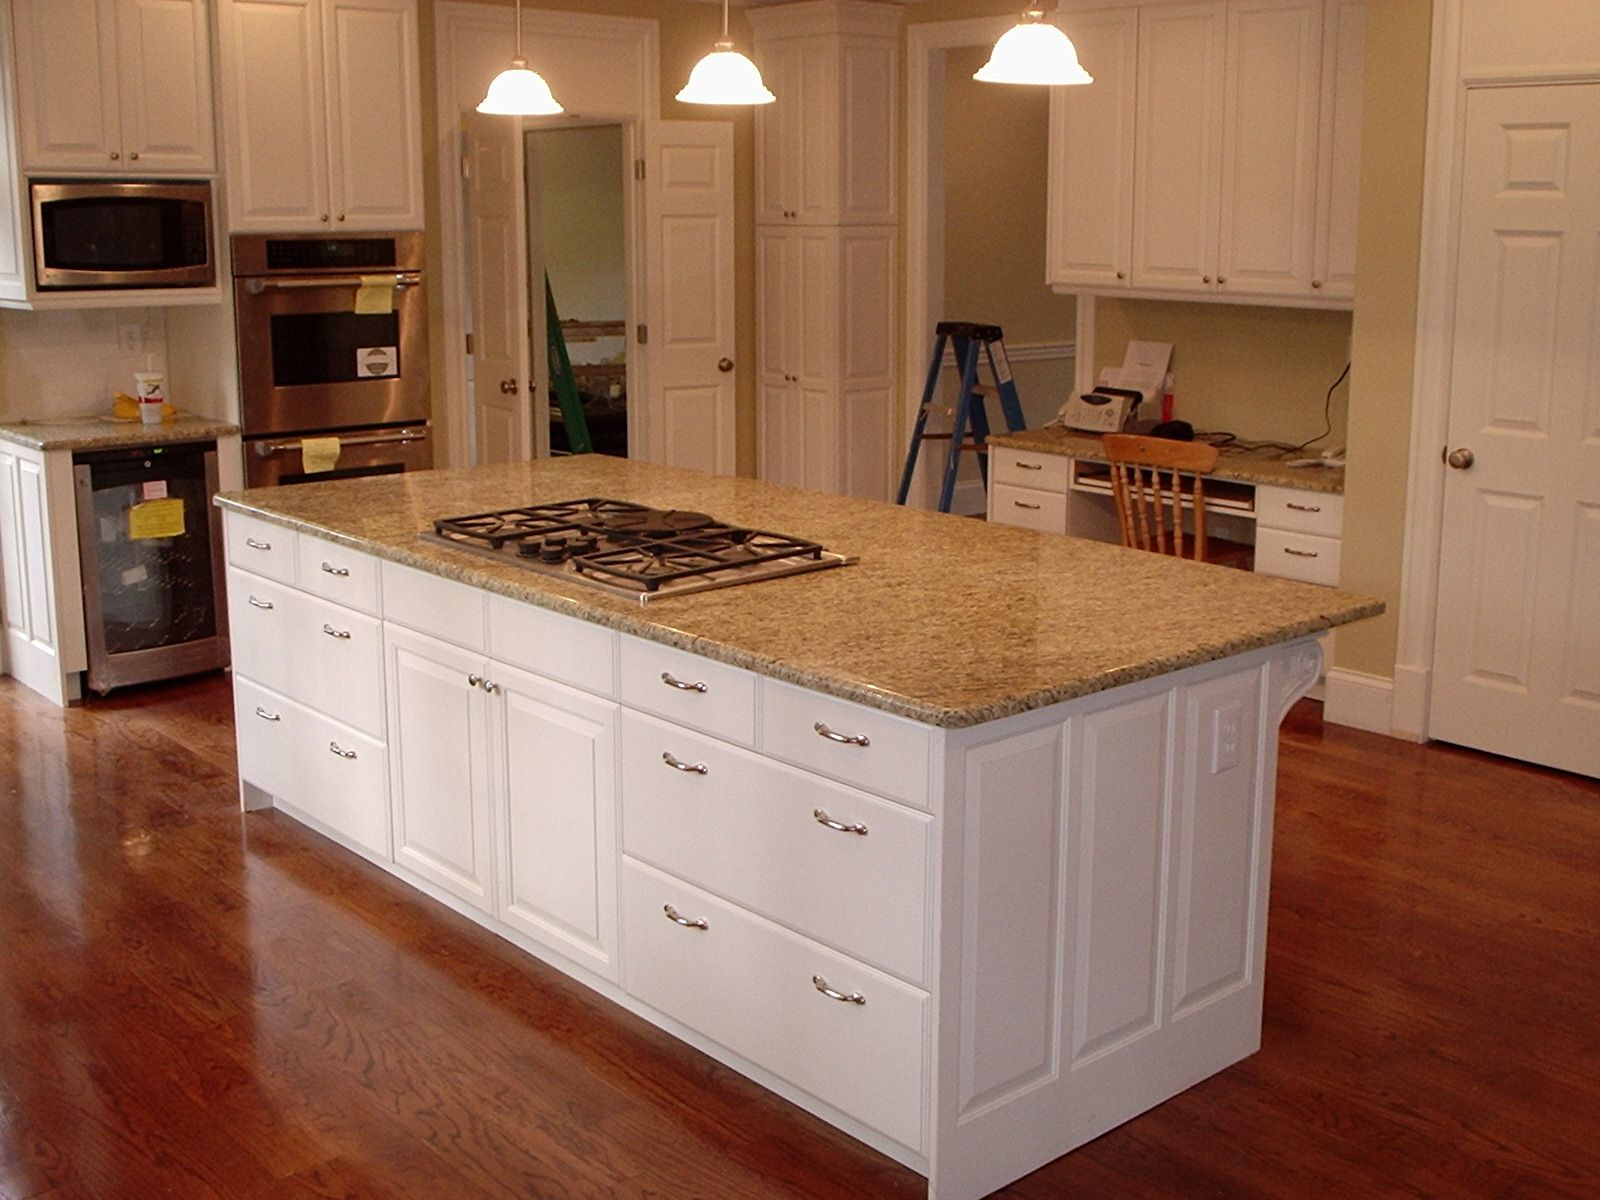 Kitchen Cabinets  Proulx And How You Can Learn How To Build Gorgeous Build Your Own Kitchen Cabinets Design Ideas